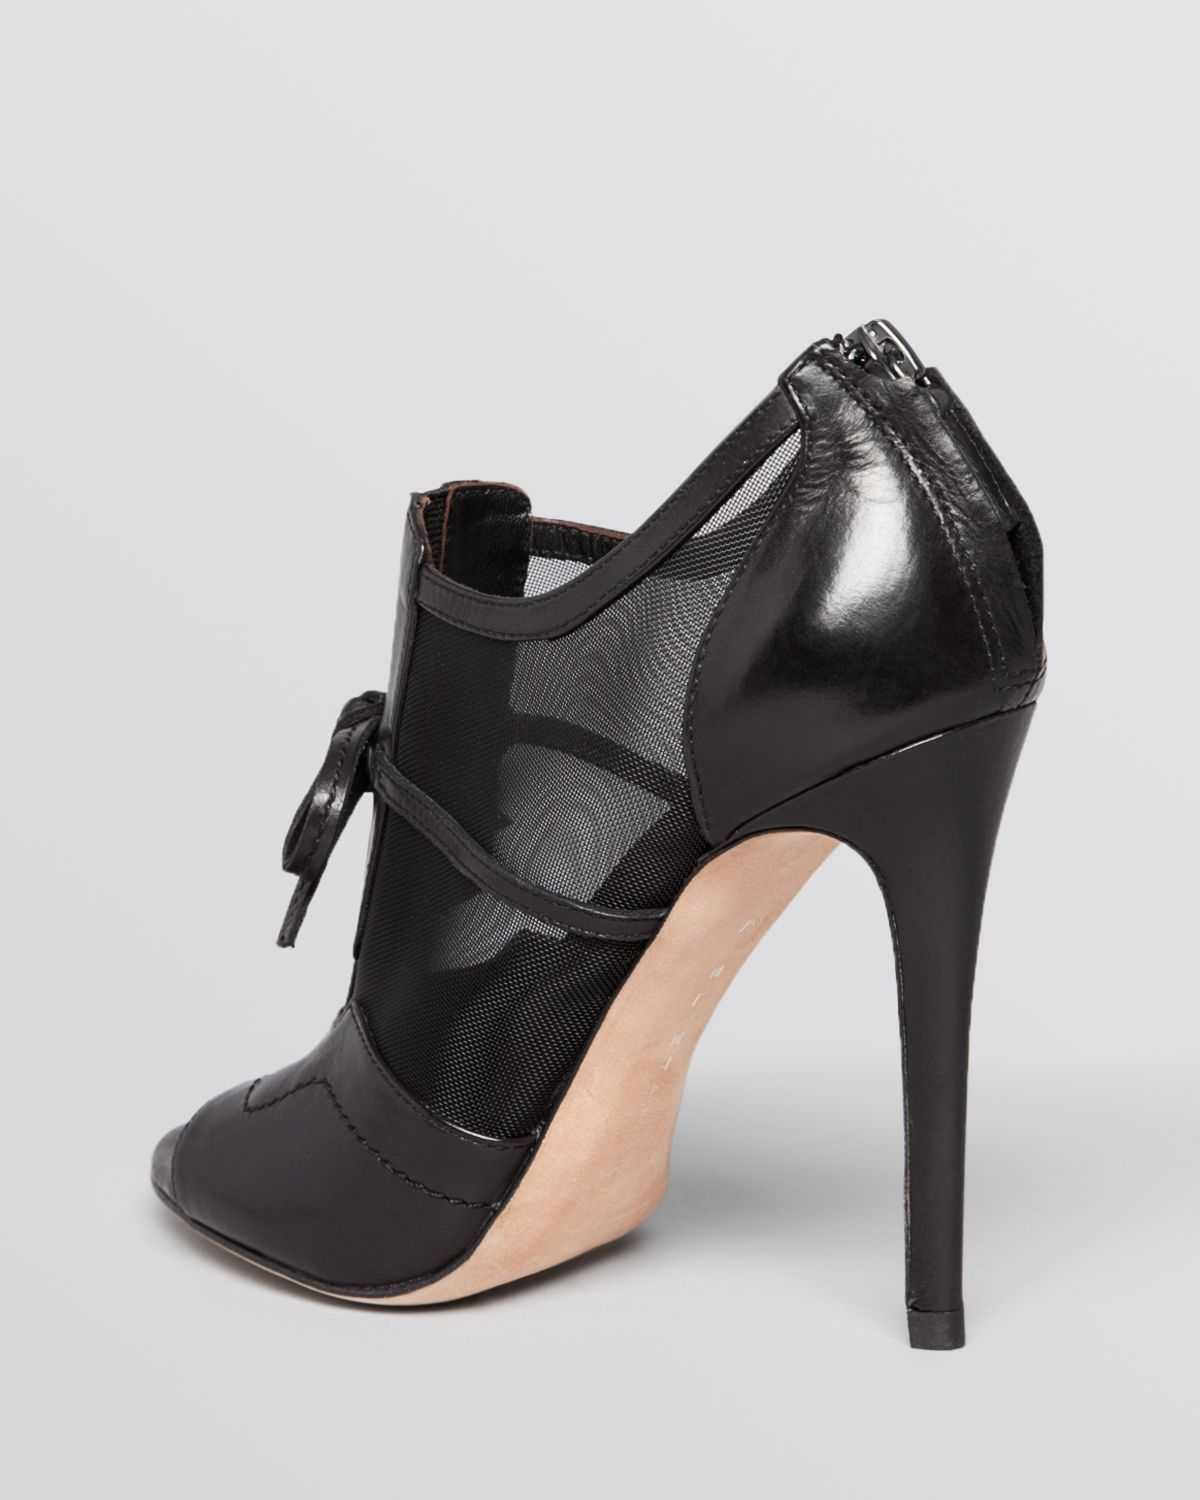 Shop the latest and fashionable women booties shoes at lolapalka.cf offers black ankle booties,lace up ankle booties,leopard wedge booties,wedge ankle booties,black wedge booties,flat ankle booties,black suede booties,lace up booties,stiletto booties,peep toe booties,black high heel booties,strappy booties and more at cheap price.